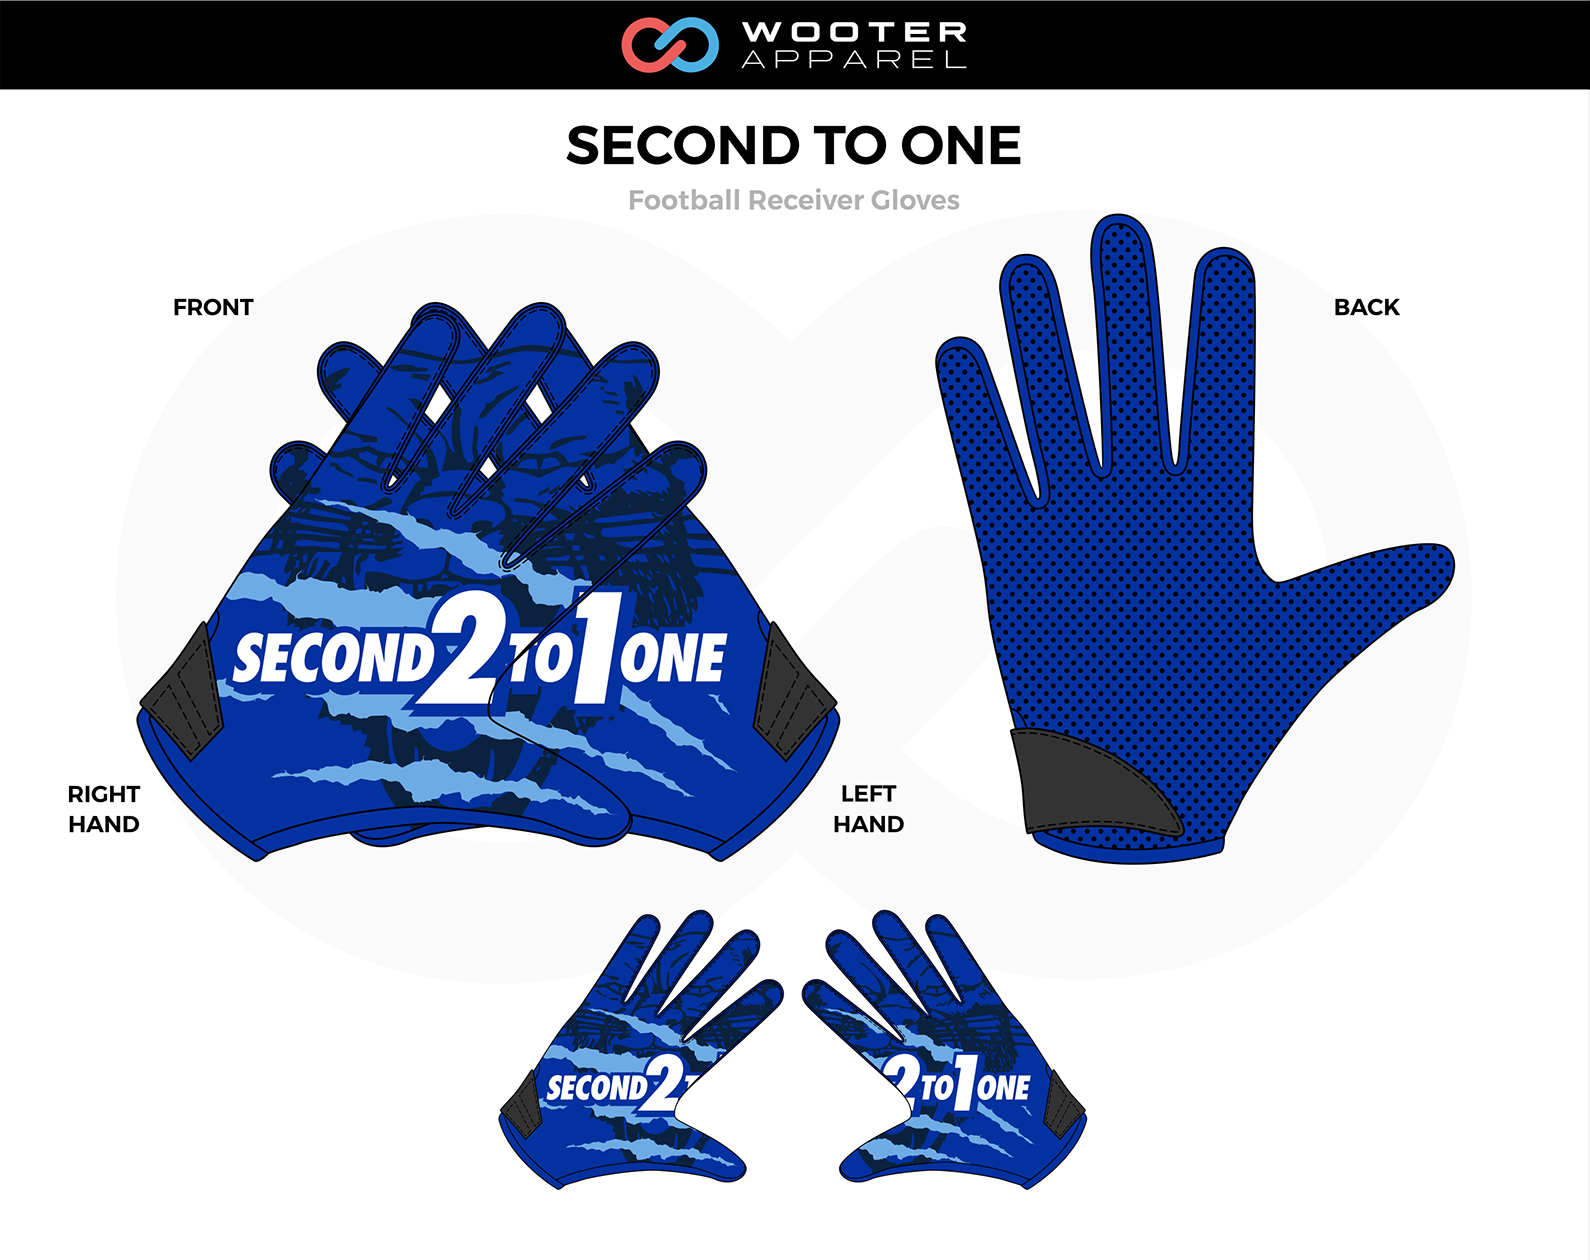 01_Second to One Football Glove.png